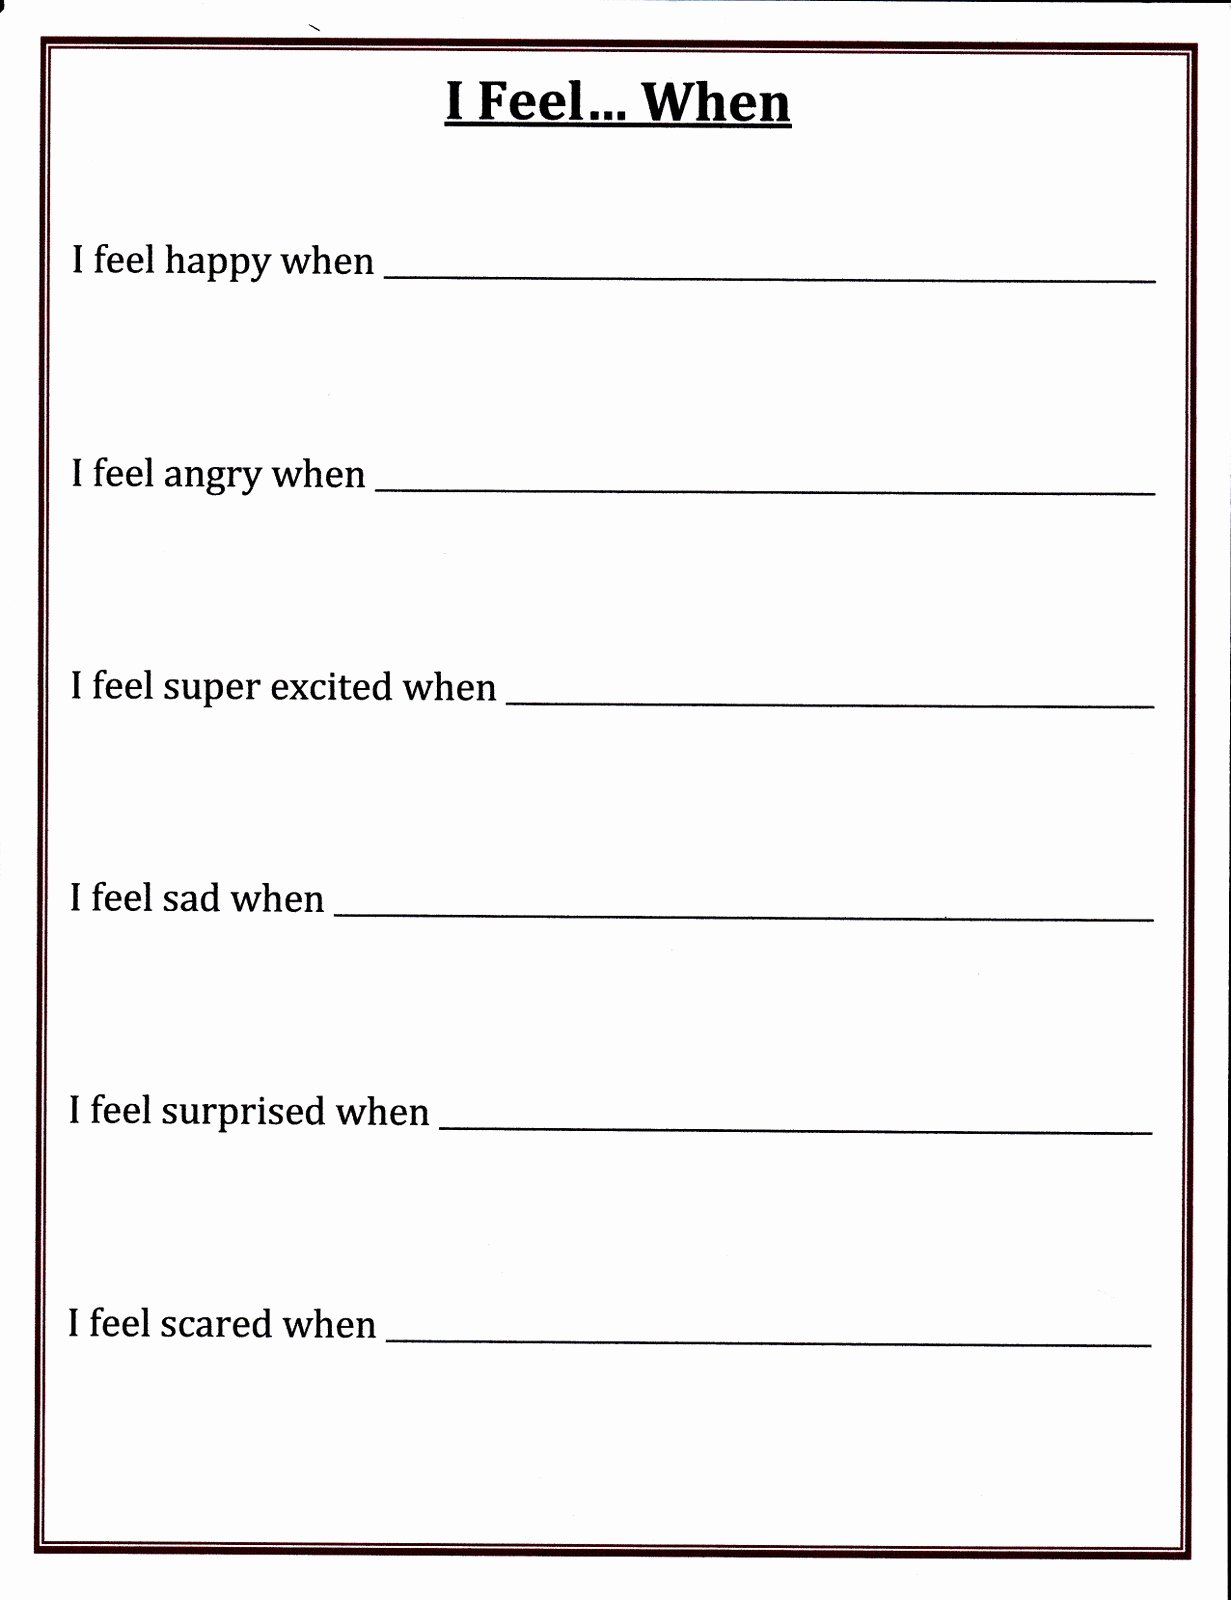 Adhd Worksheets for Preschoolers Fresh Adhd Worksheets for Kids